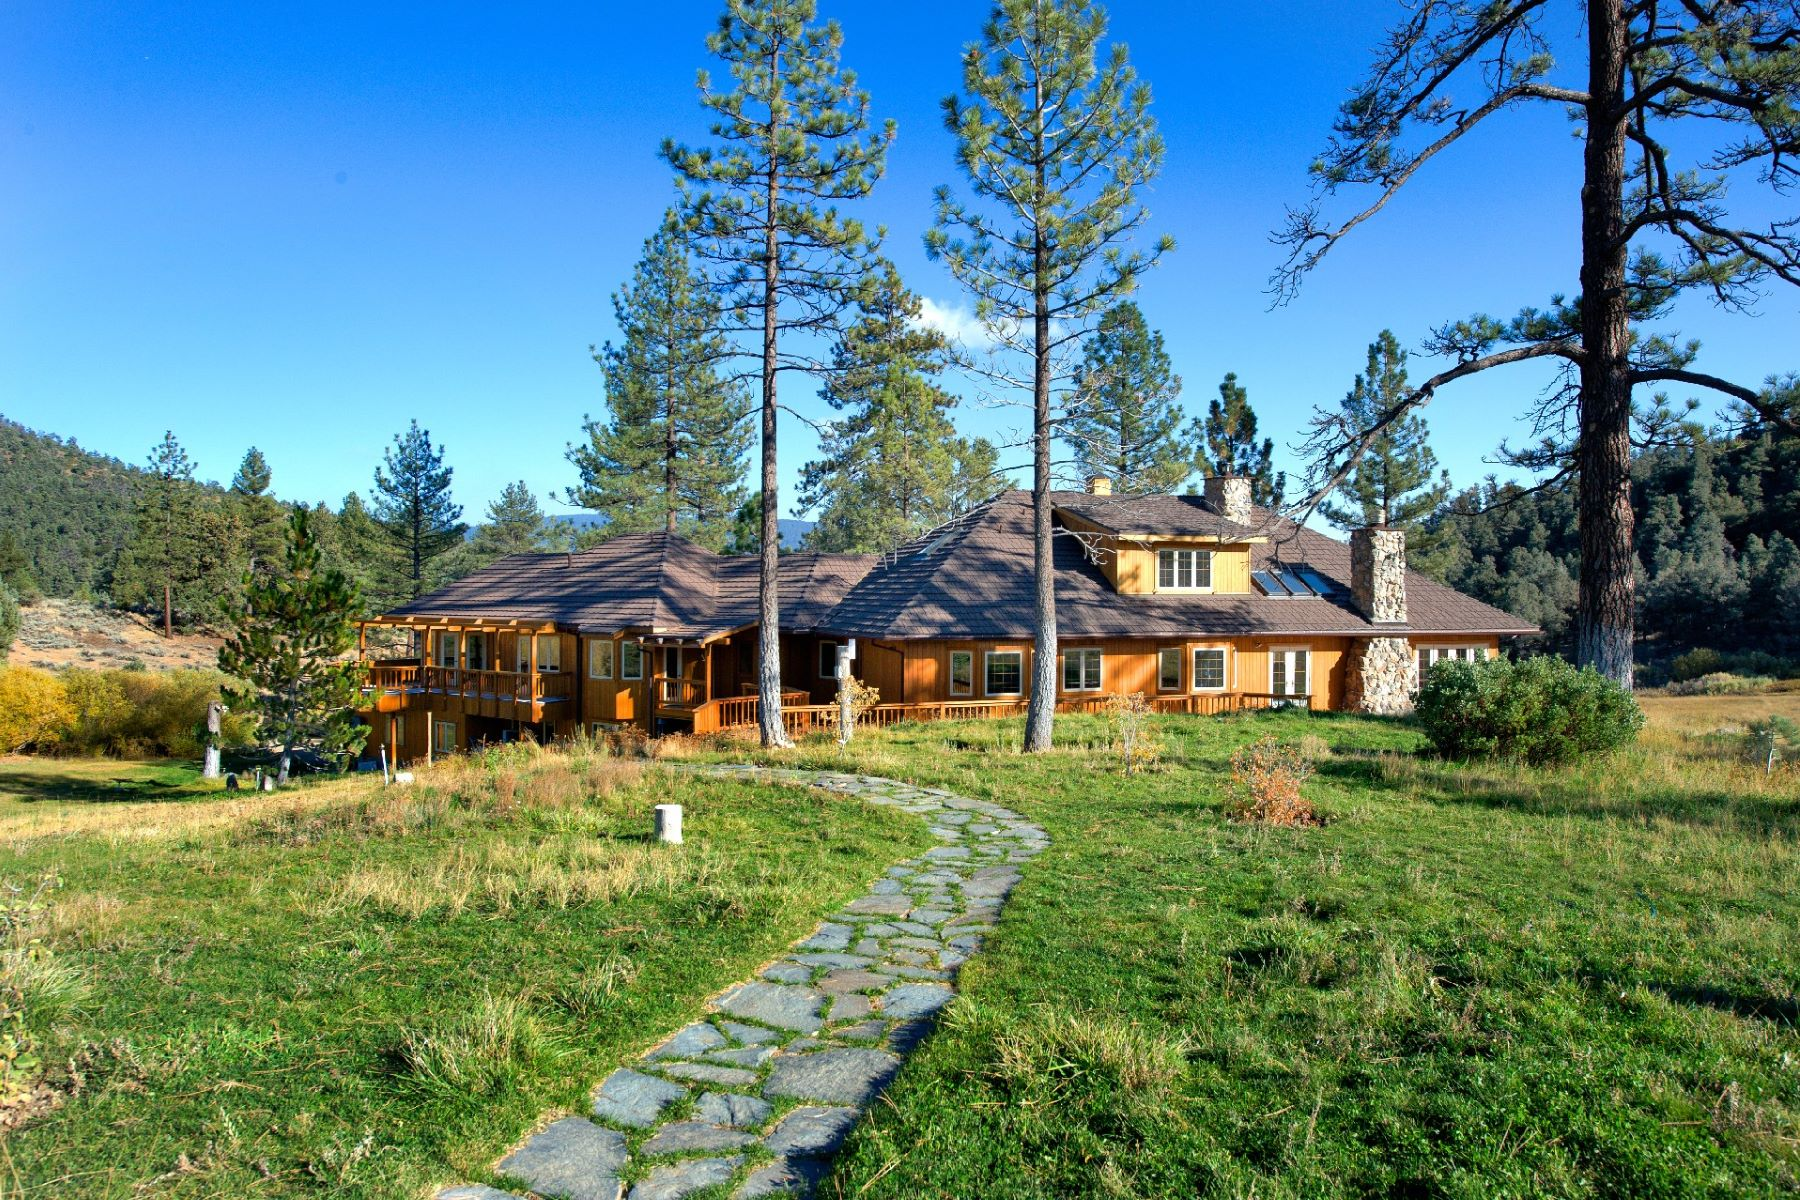 Ferme / Ranch / Plantation pour l Vente à Spring Valley Ranch - Rare Mountain Valley Equestrian Property 33224 Seymour Canyon Road Lockwood, Californie, 93225 États-Unis